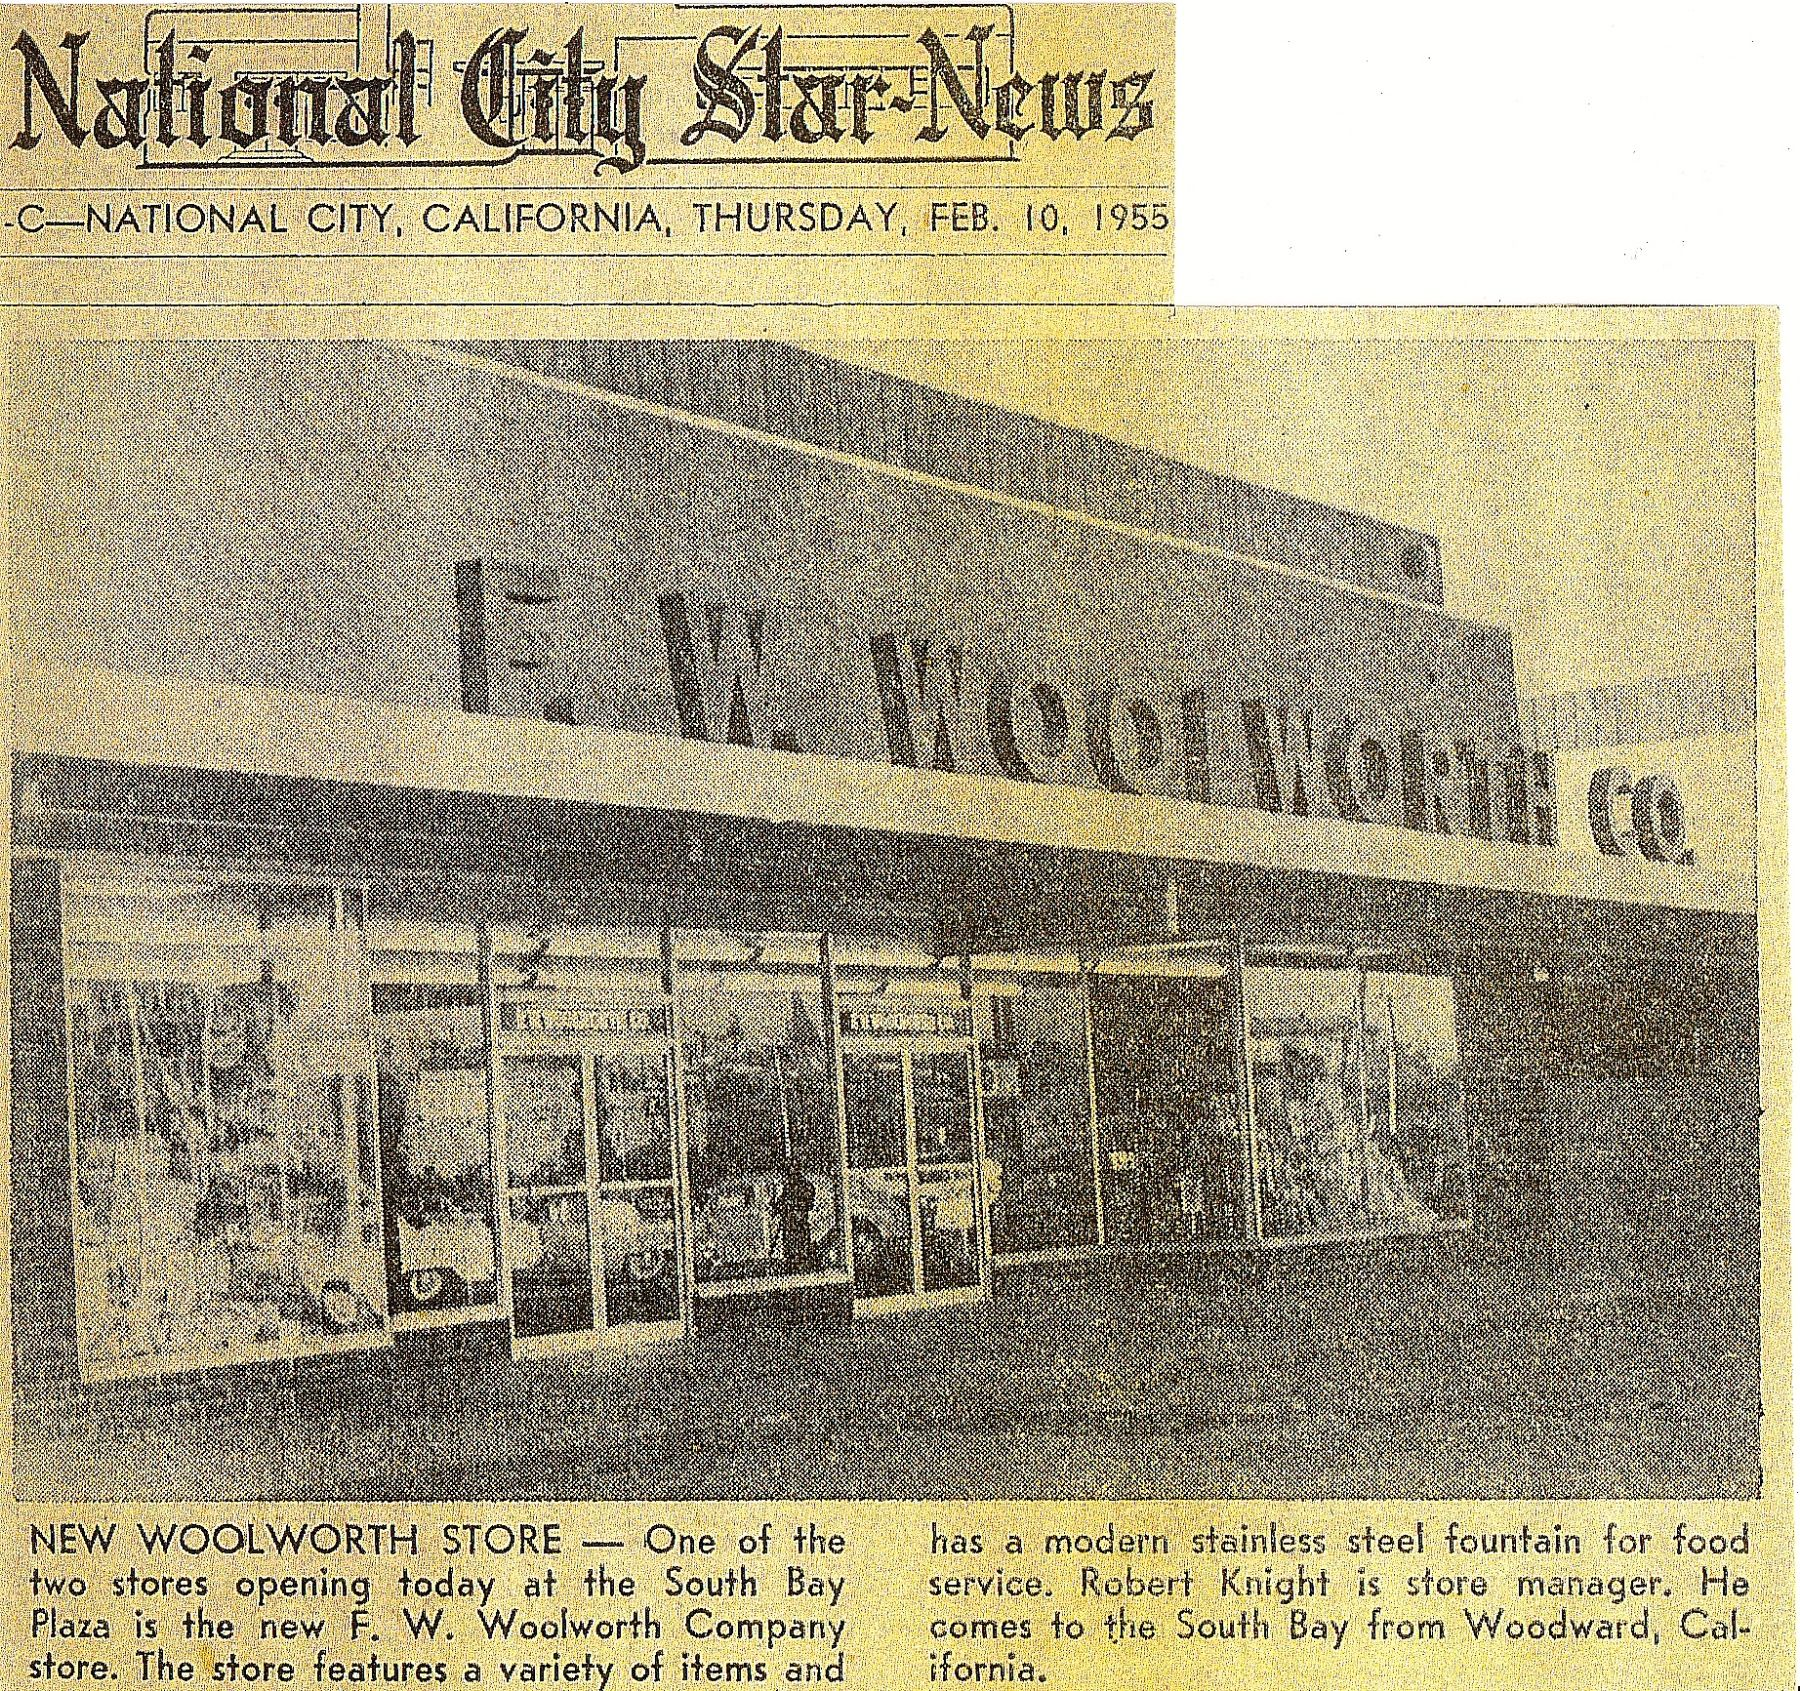 The Woolworth Store In National City That Dad Opened As